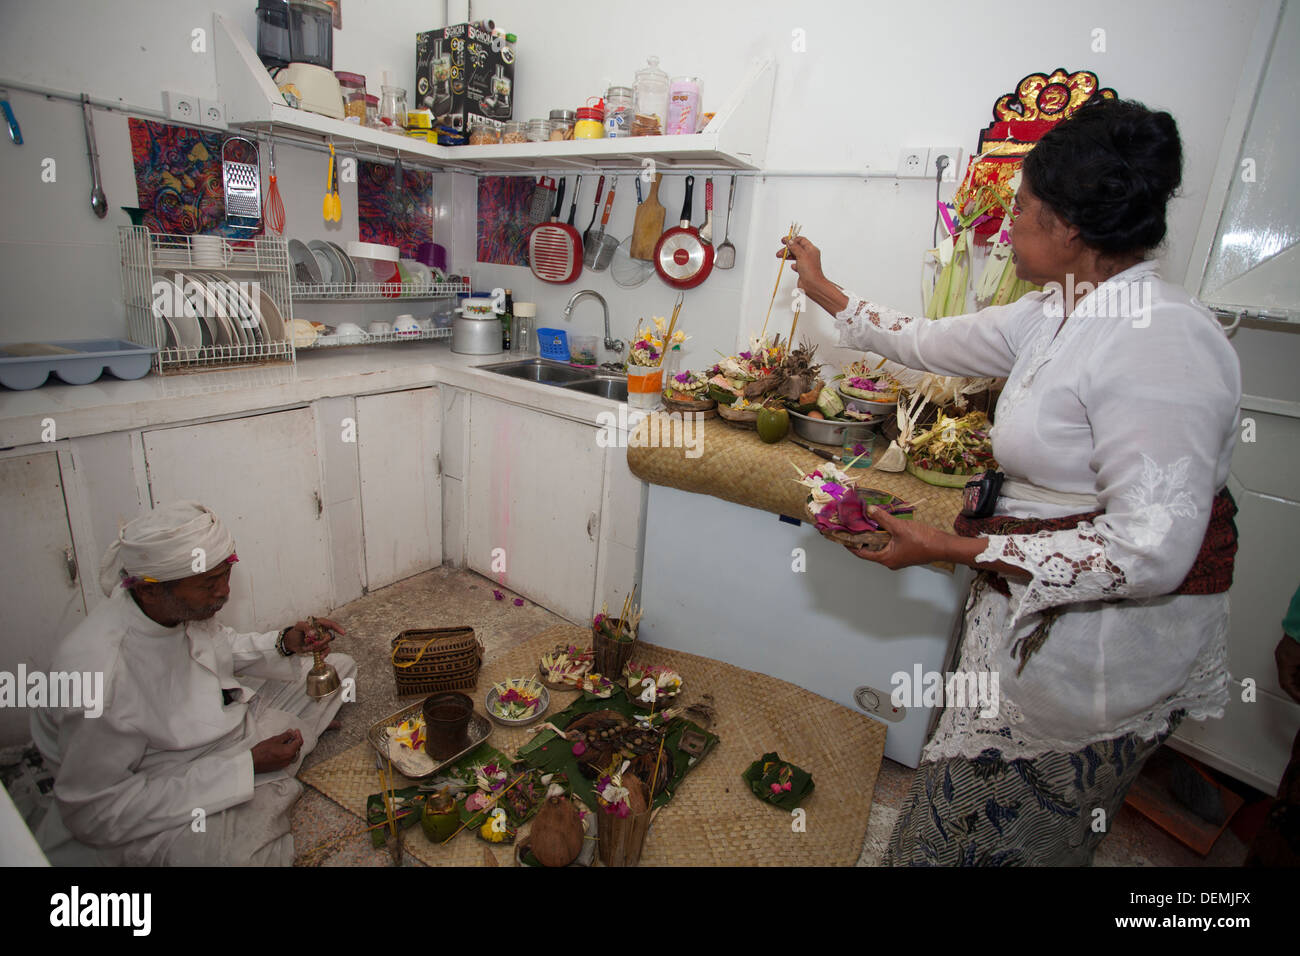 Indonesia Priest blessing new office space kitchen Bali Asia ceremony gods spirits protect protection luck profitable bless art - Stock Image